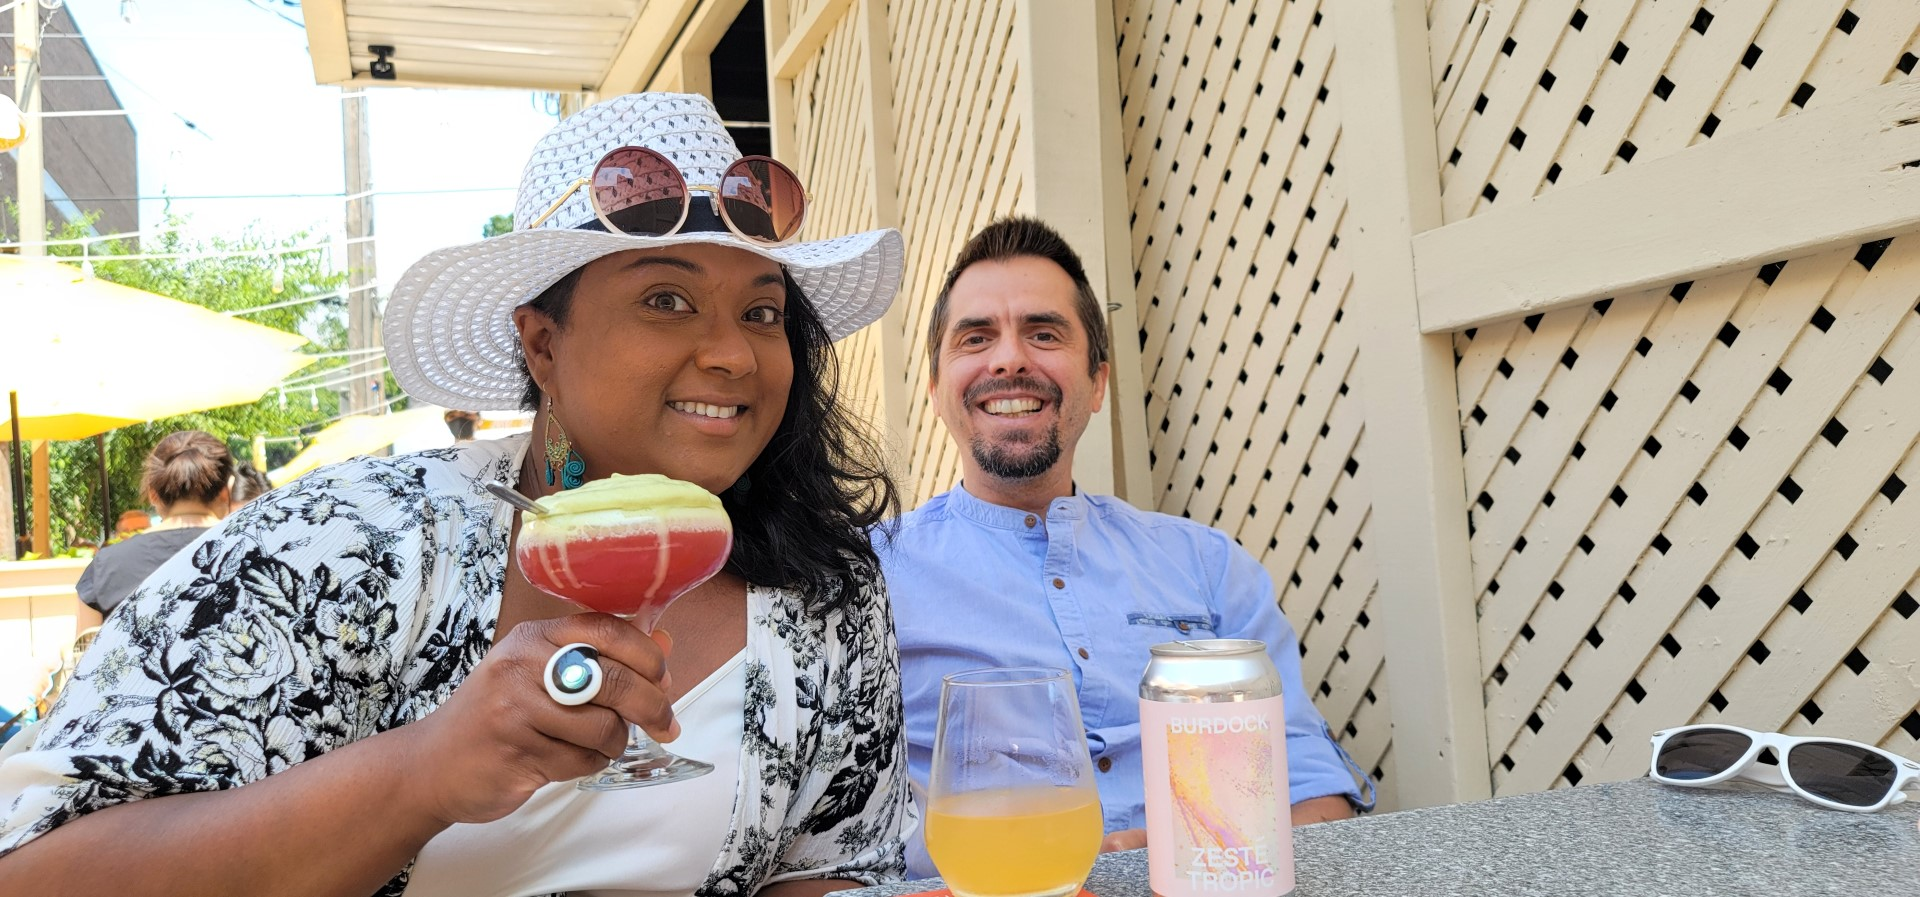 mixed race Toronto couple smiling and holding drinks